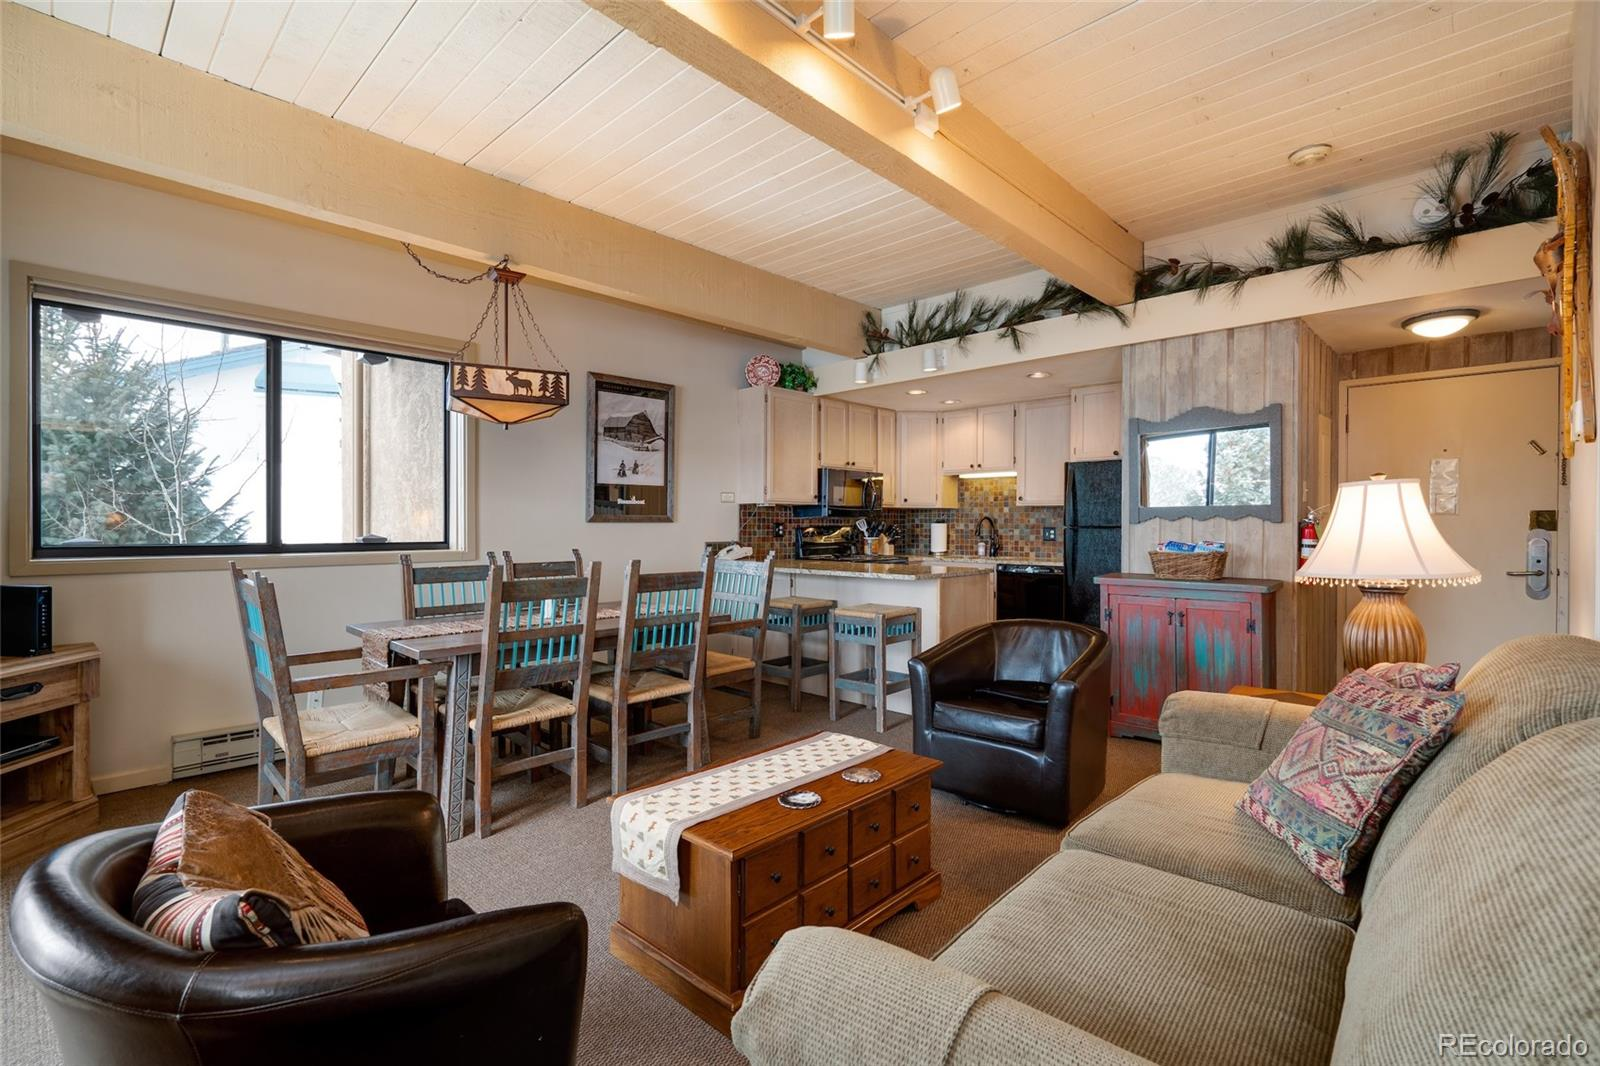 MLS# 8046163 - 11 - 2355 Storm Meadows Dr 311  #A-311, Steamboat Springs, CO 80487